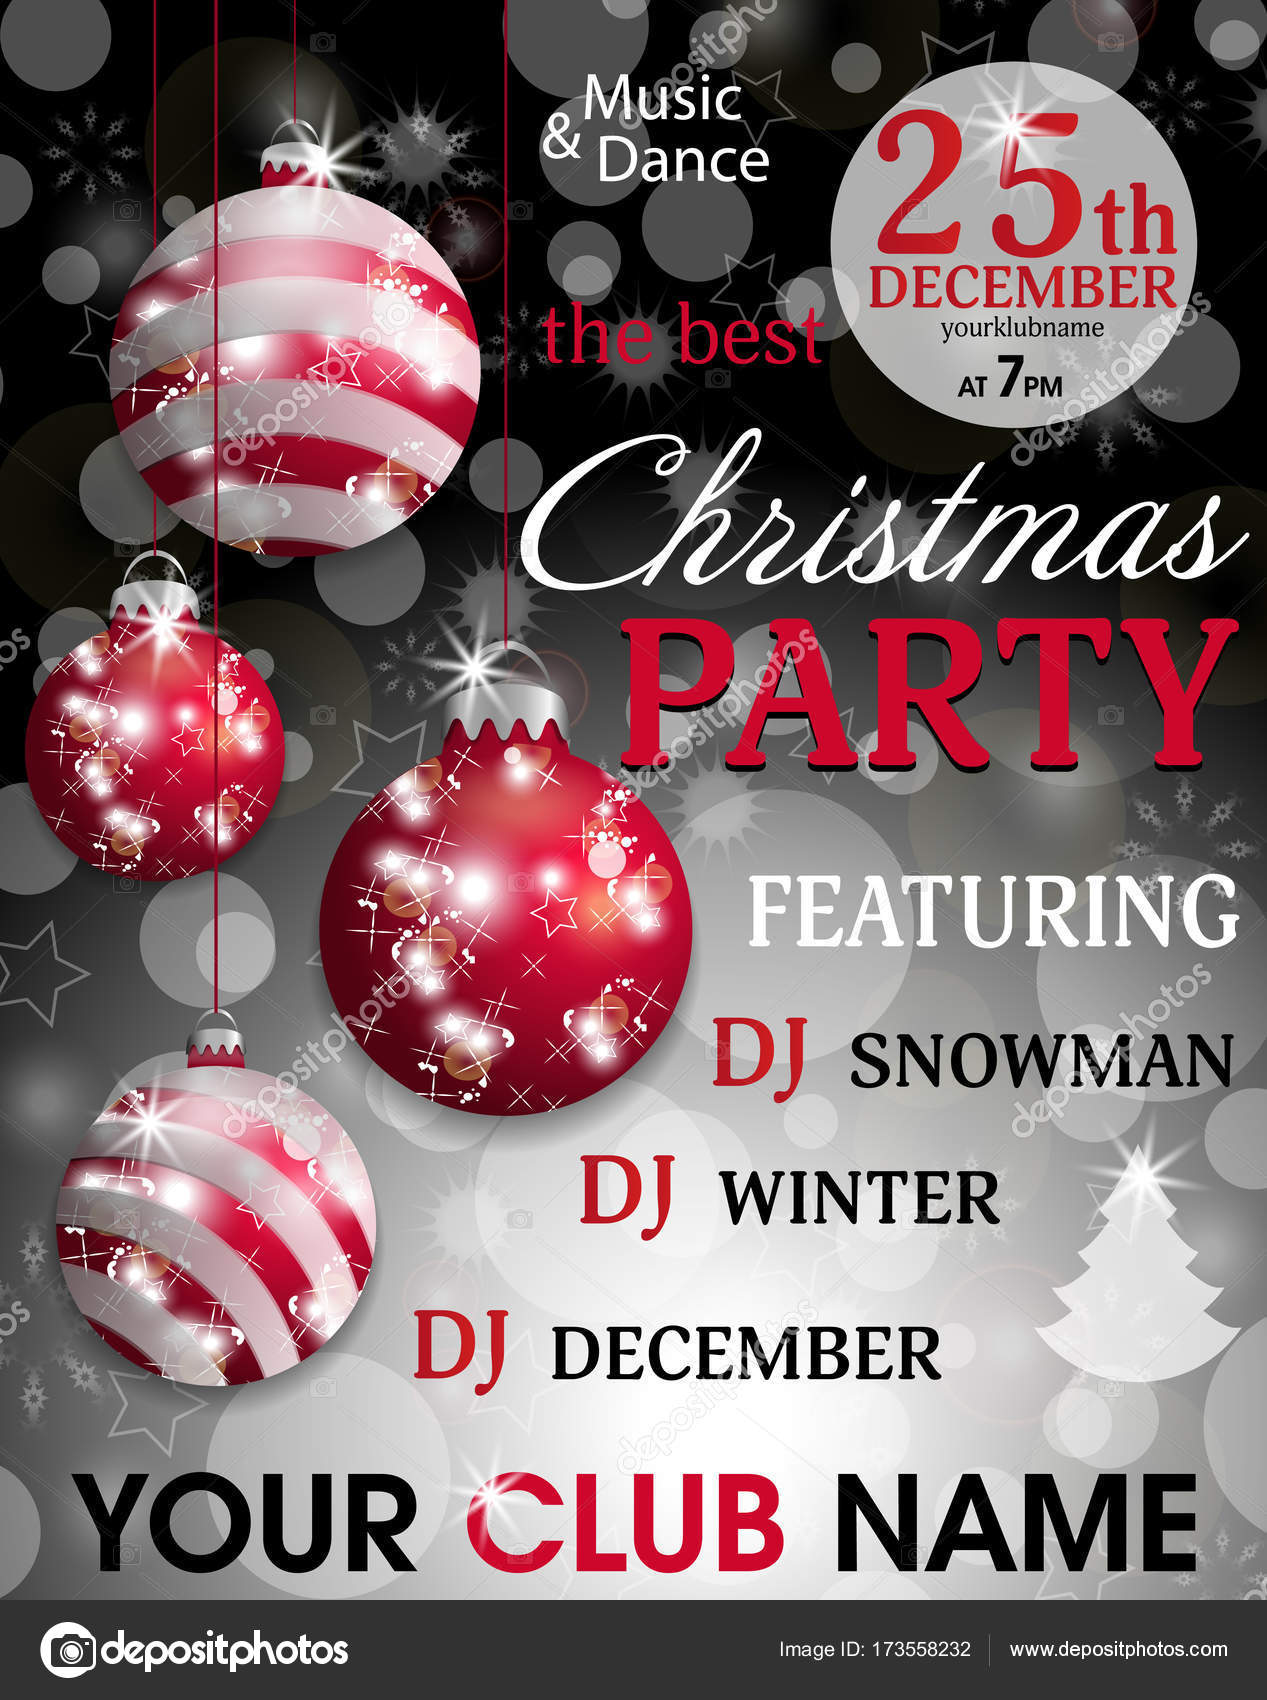 Christmas party invitation template black background with hung red ...